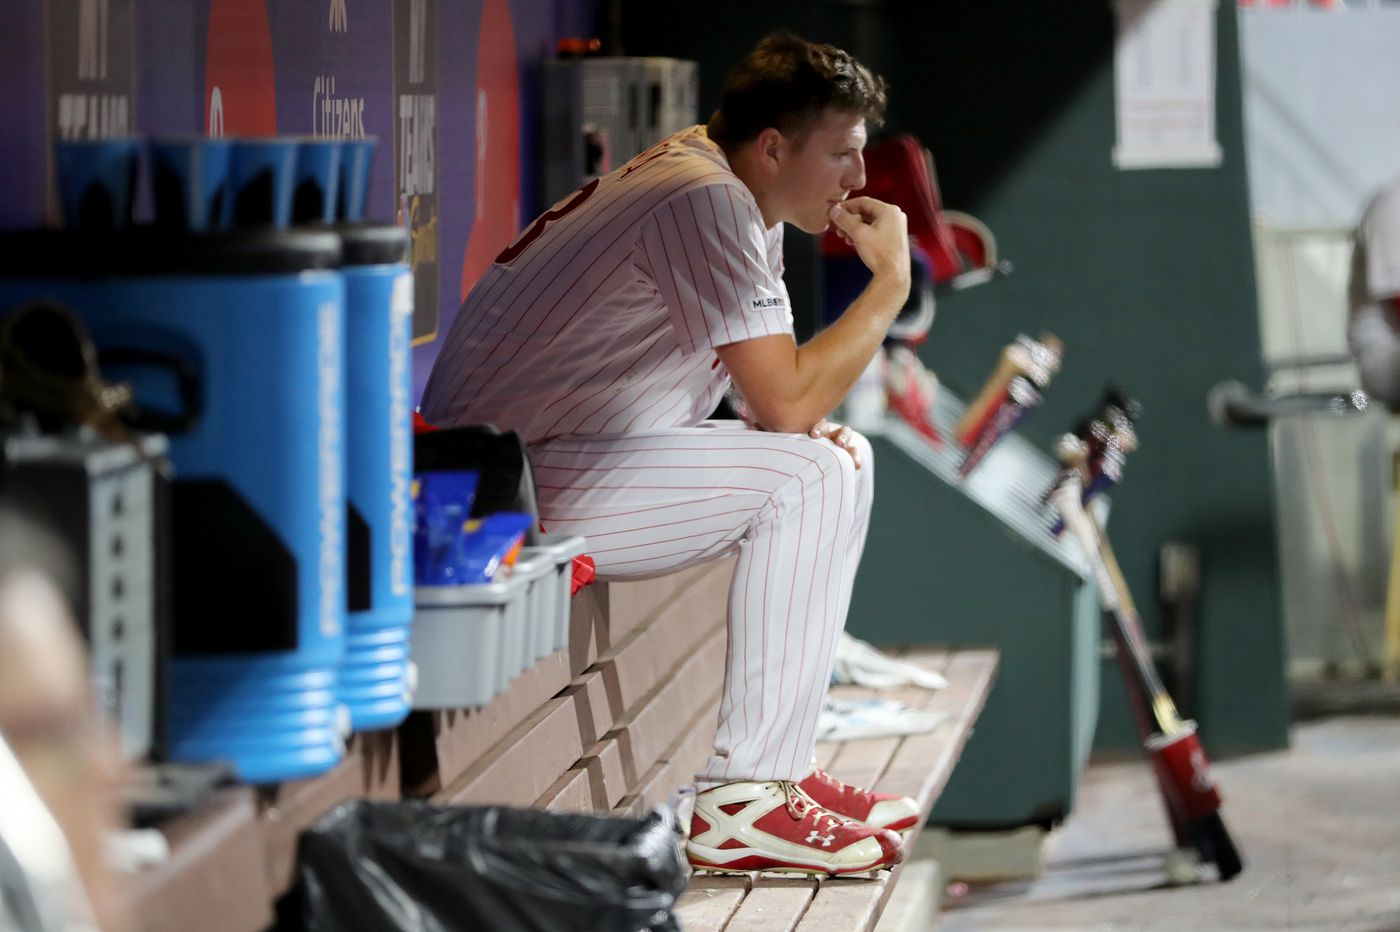 Phillies could call Nick Pivetta back up as a bullpen arm; former first-round pick Alec Bohm called up to high-A Clearwater